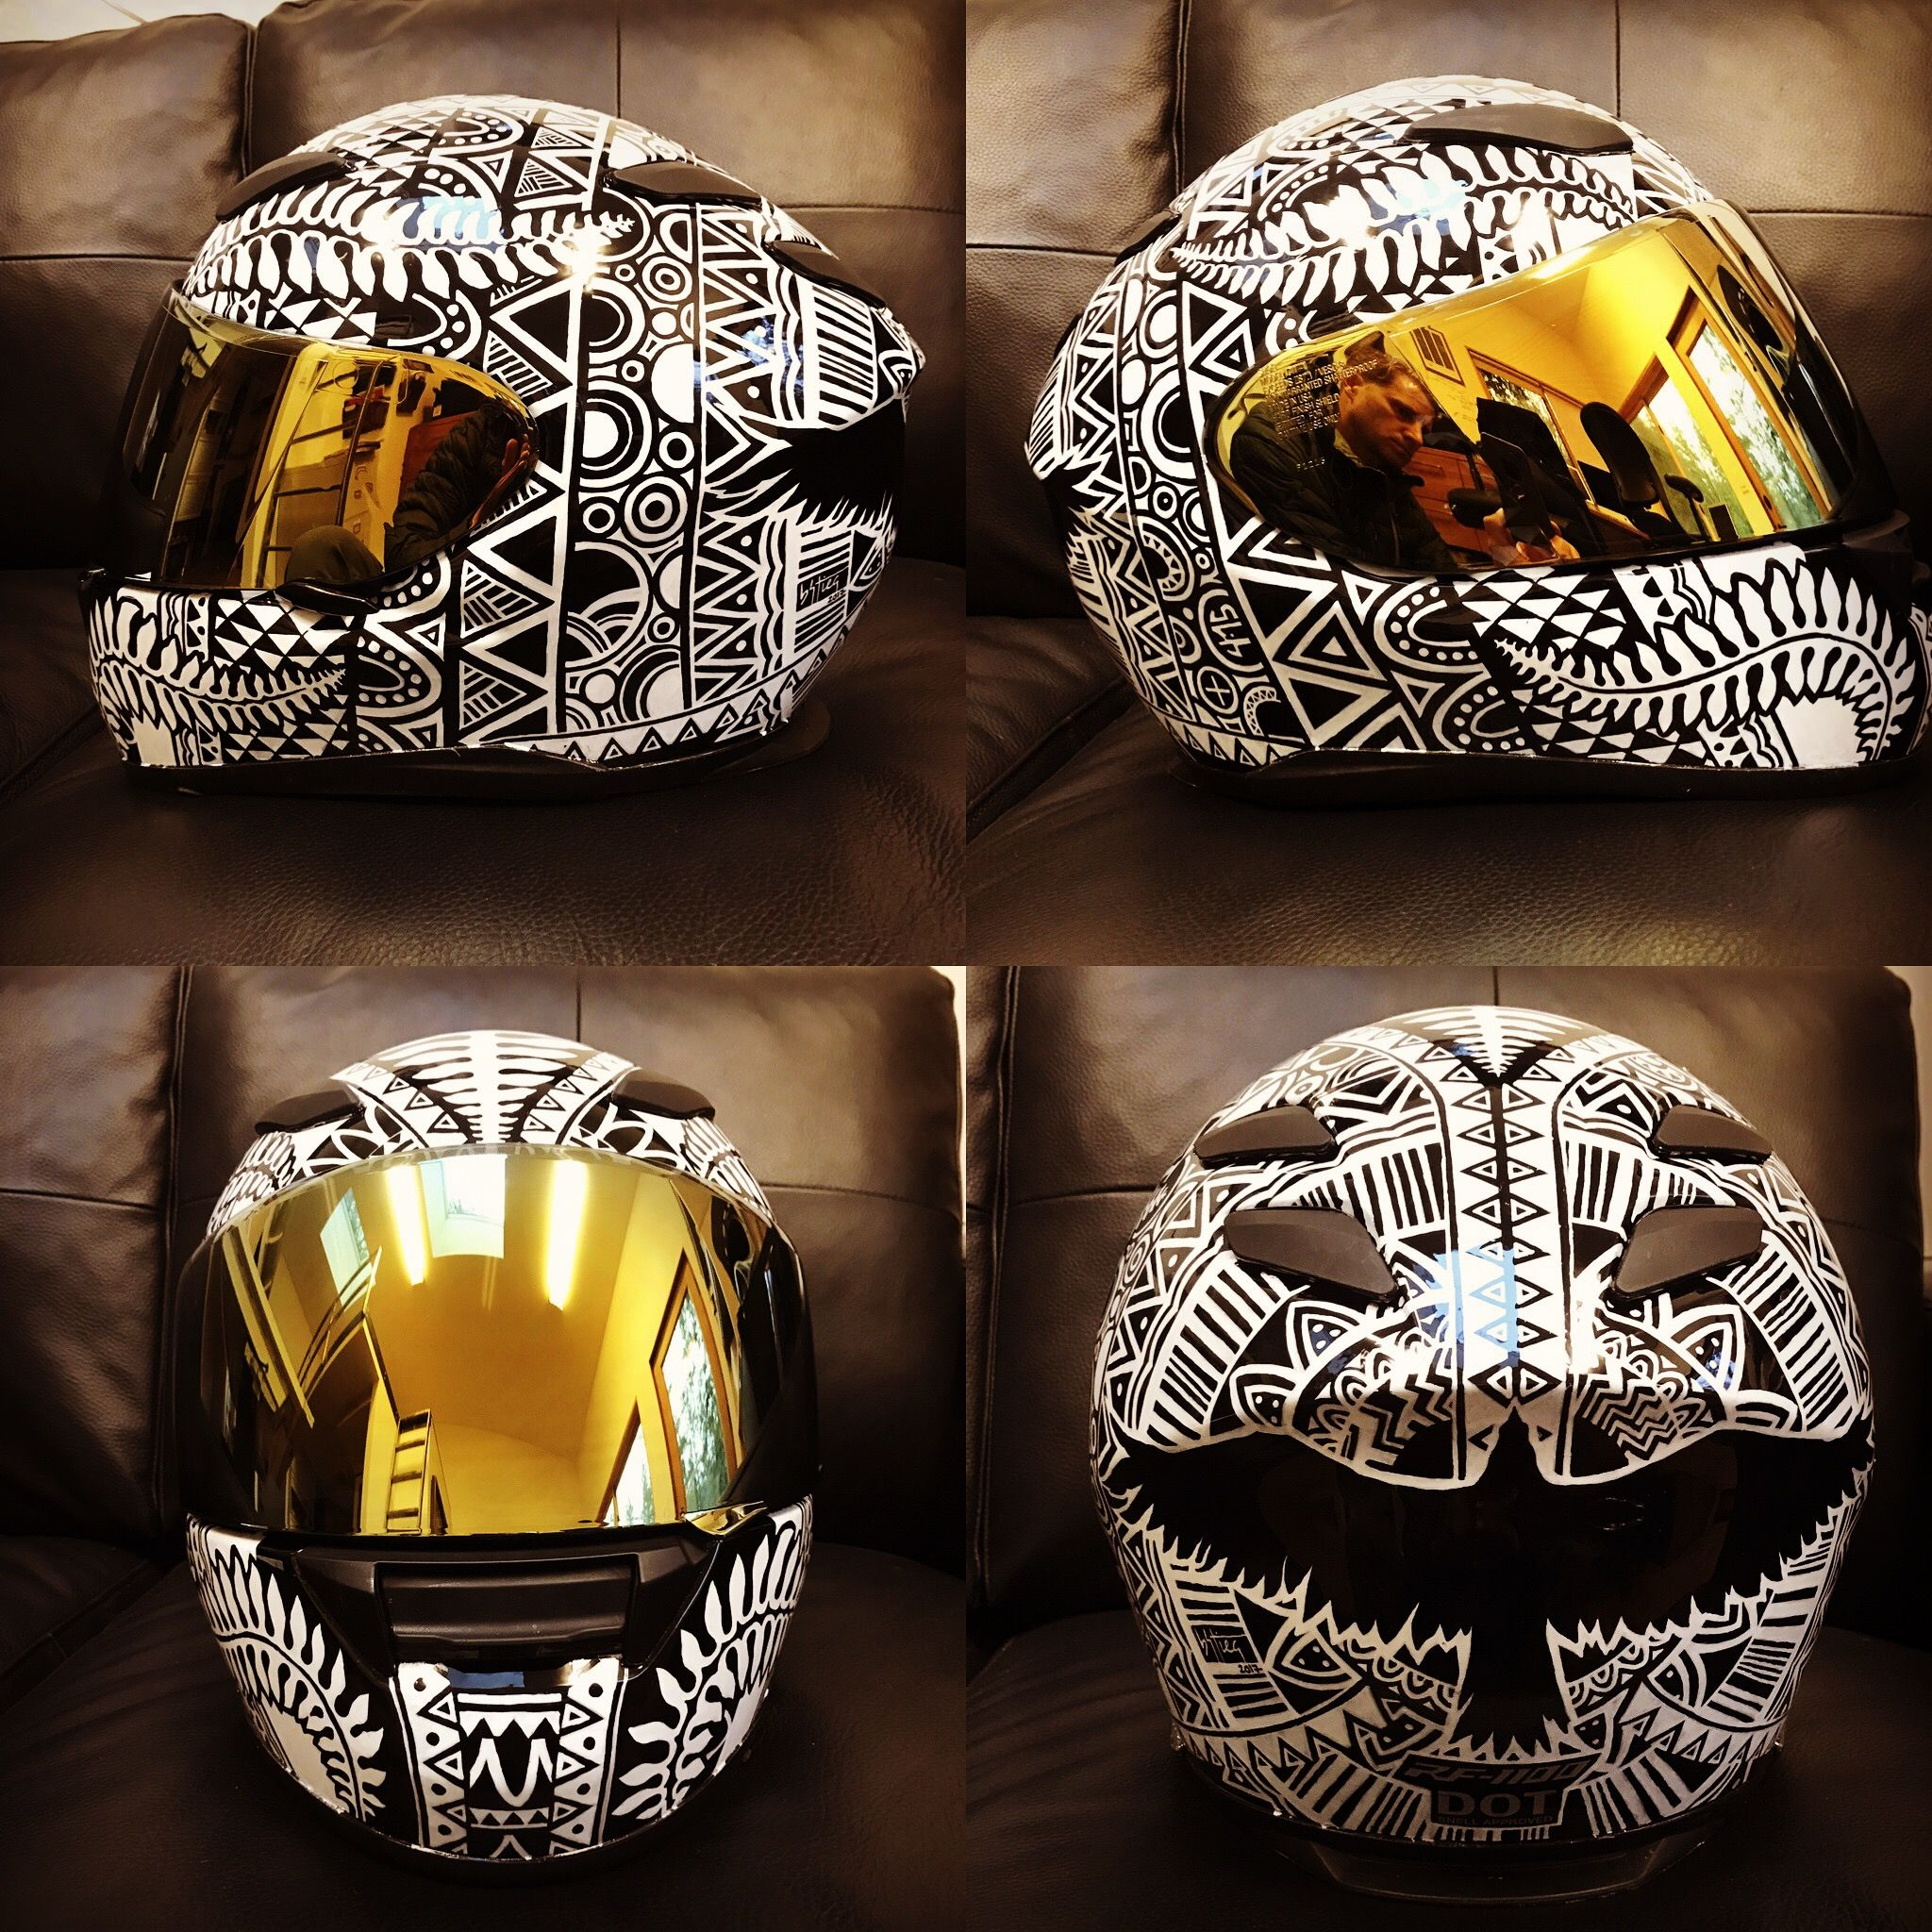 Helmet black and white design. Custom motorcycle helmet by